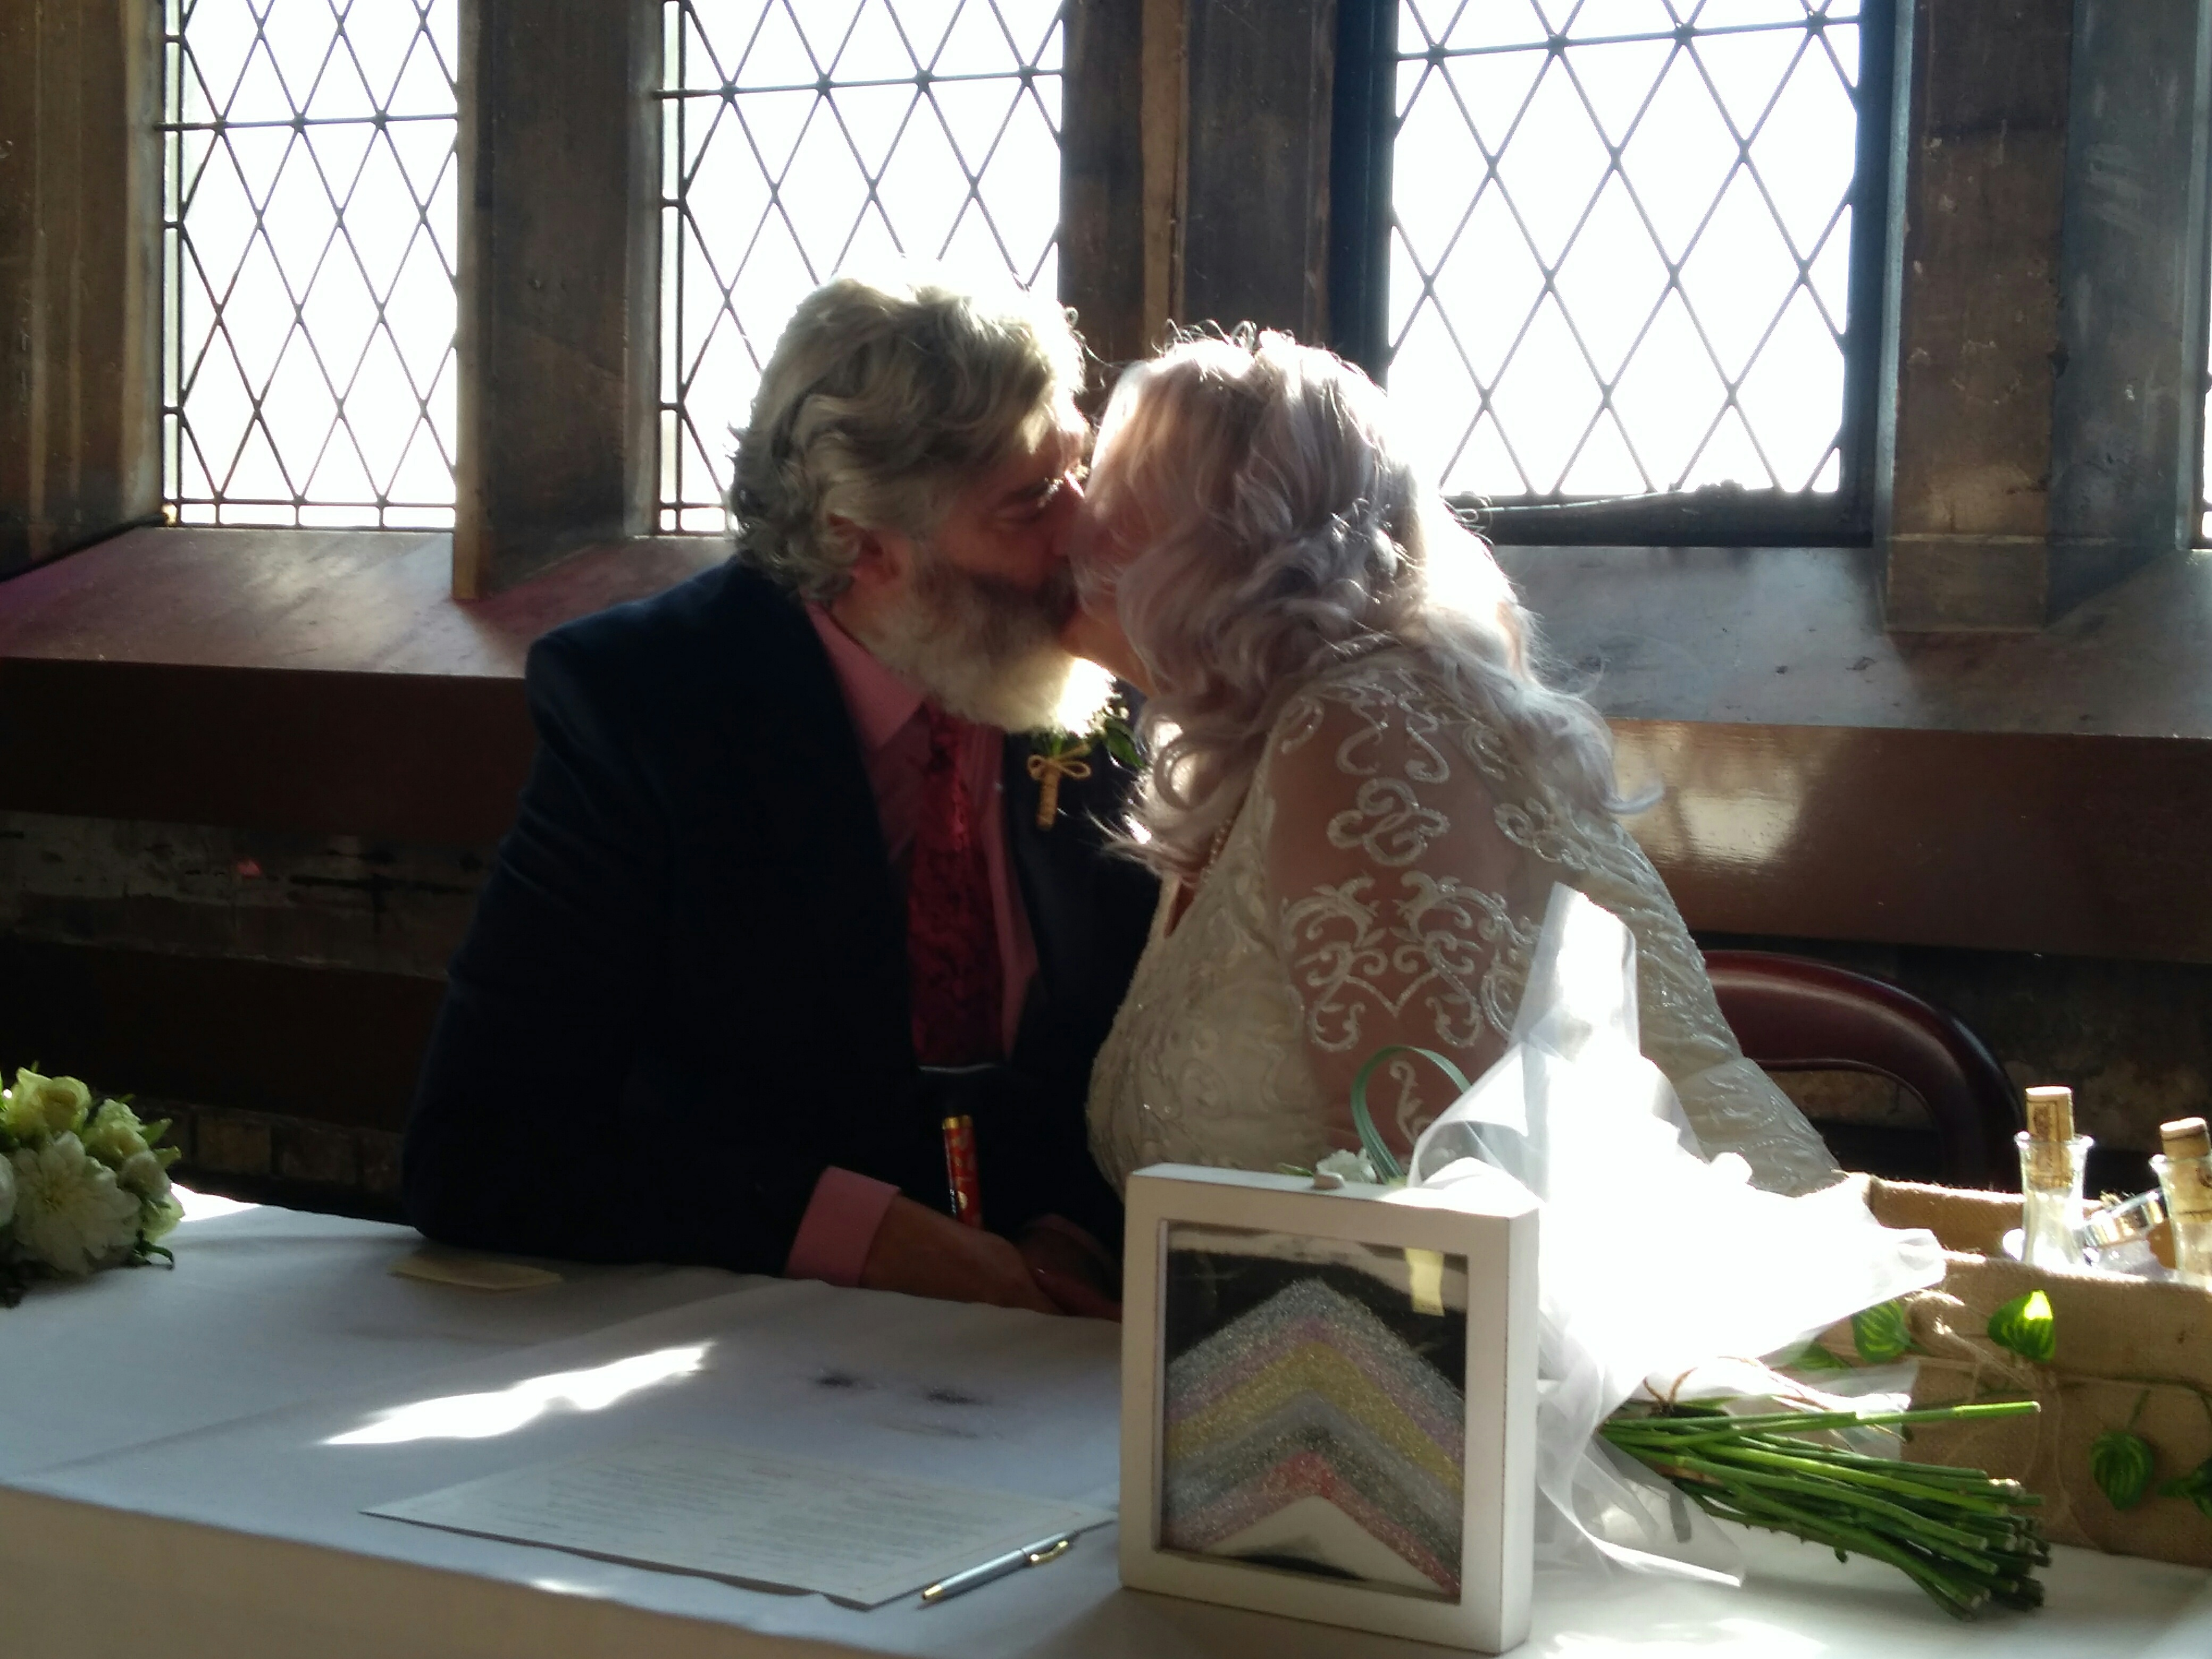 Sand cermony and vow signing